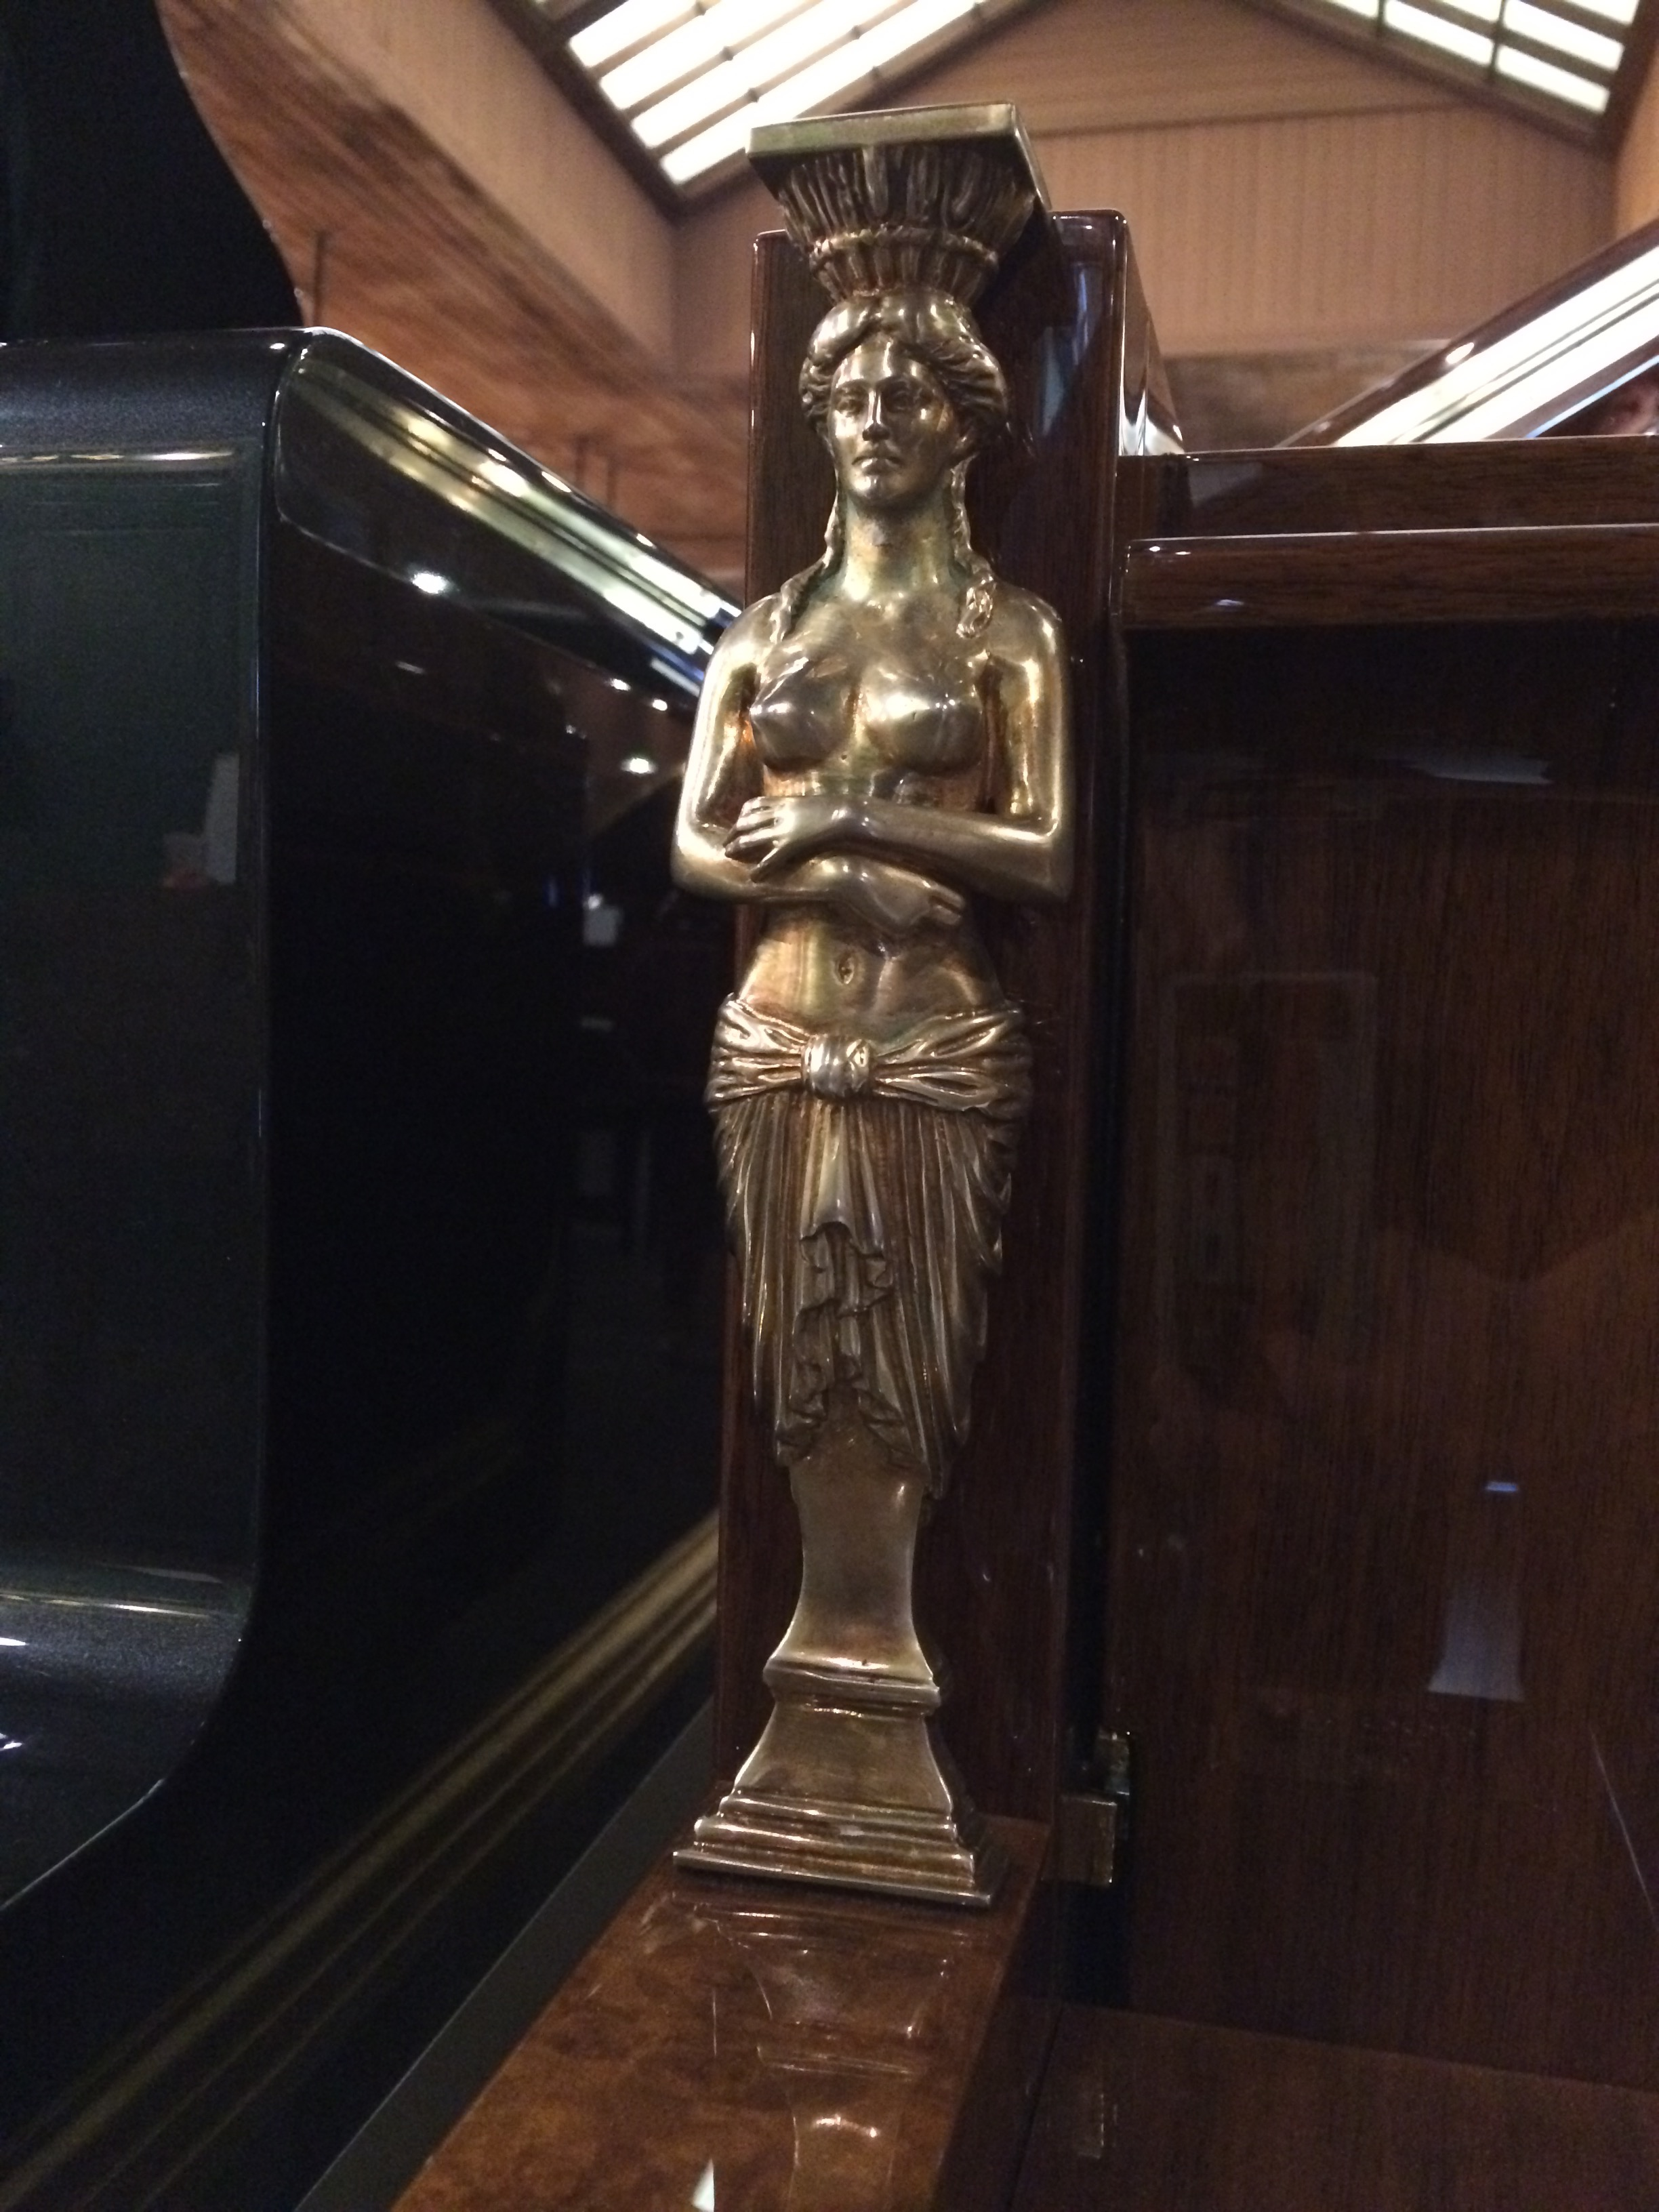 This statue and the one that bookends the keys is made of 24 carat gold.